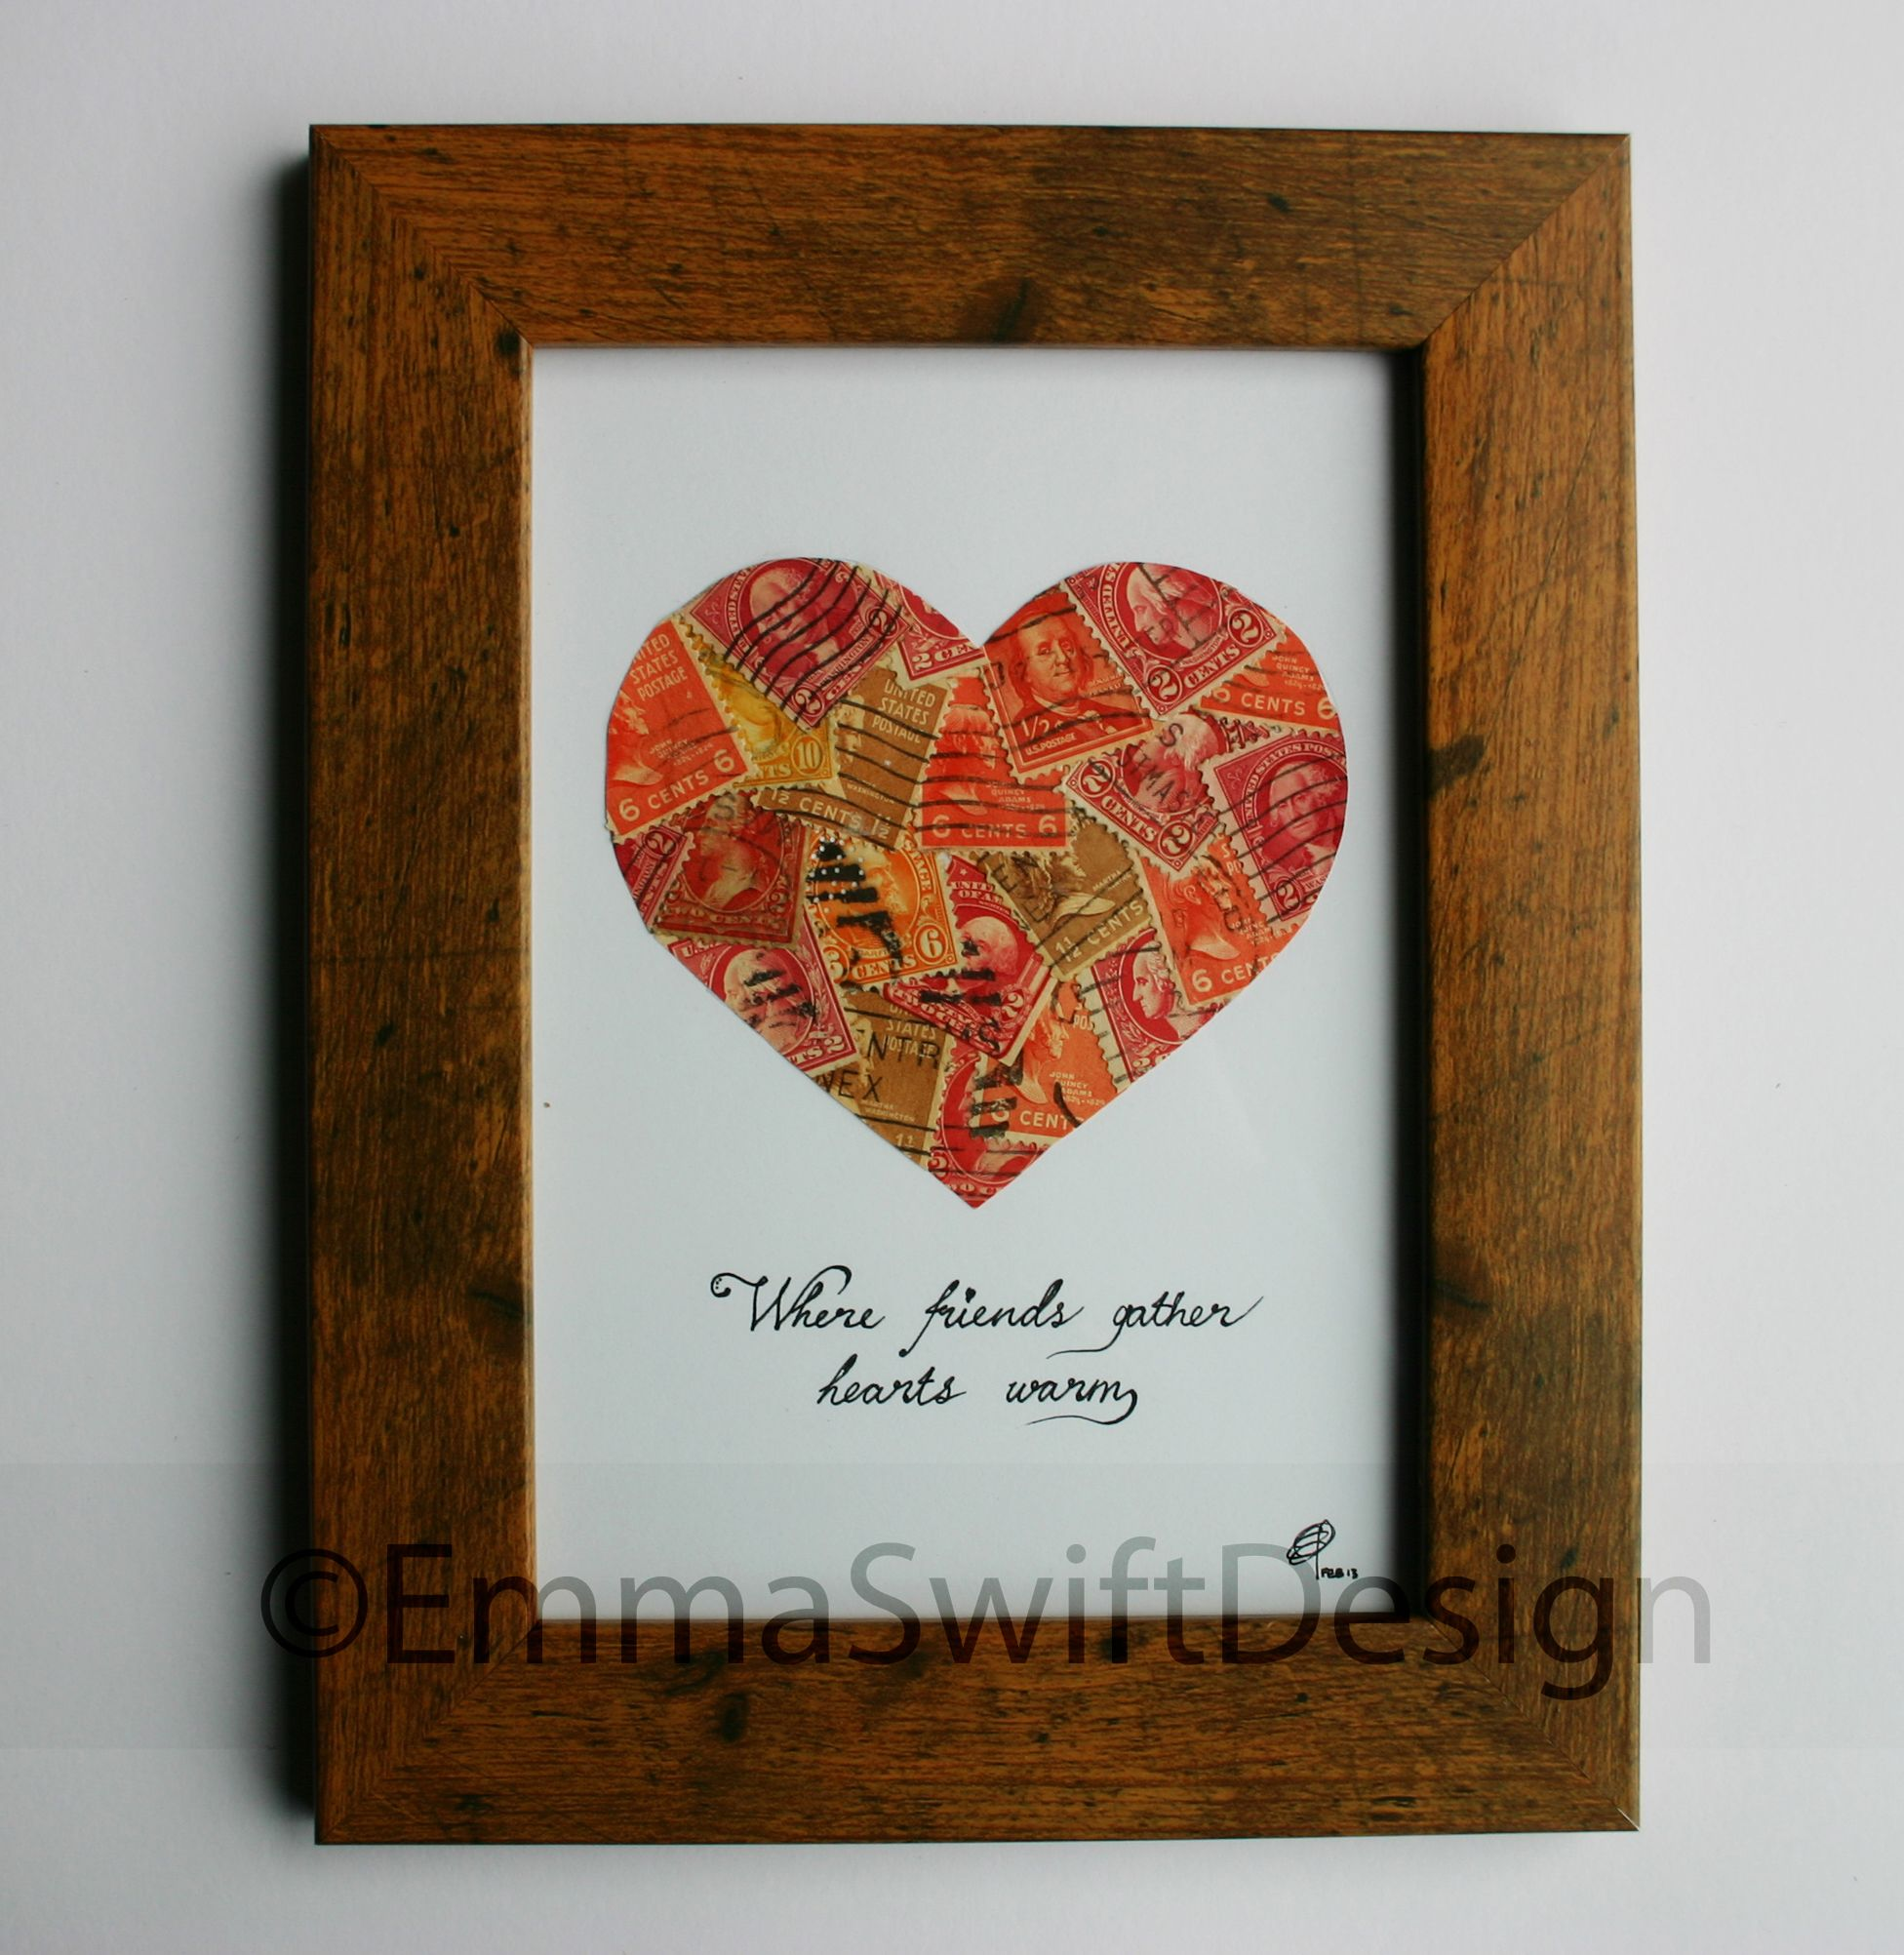 Handmade recycled postage stamp collage